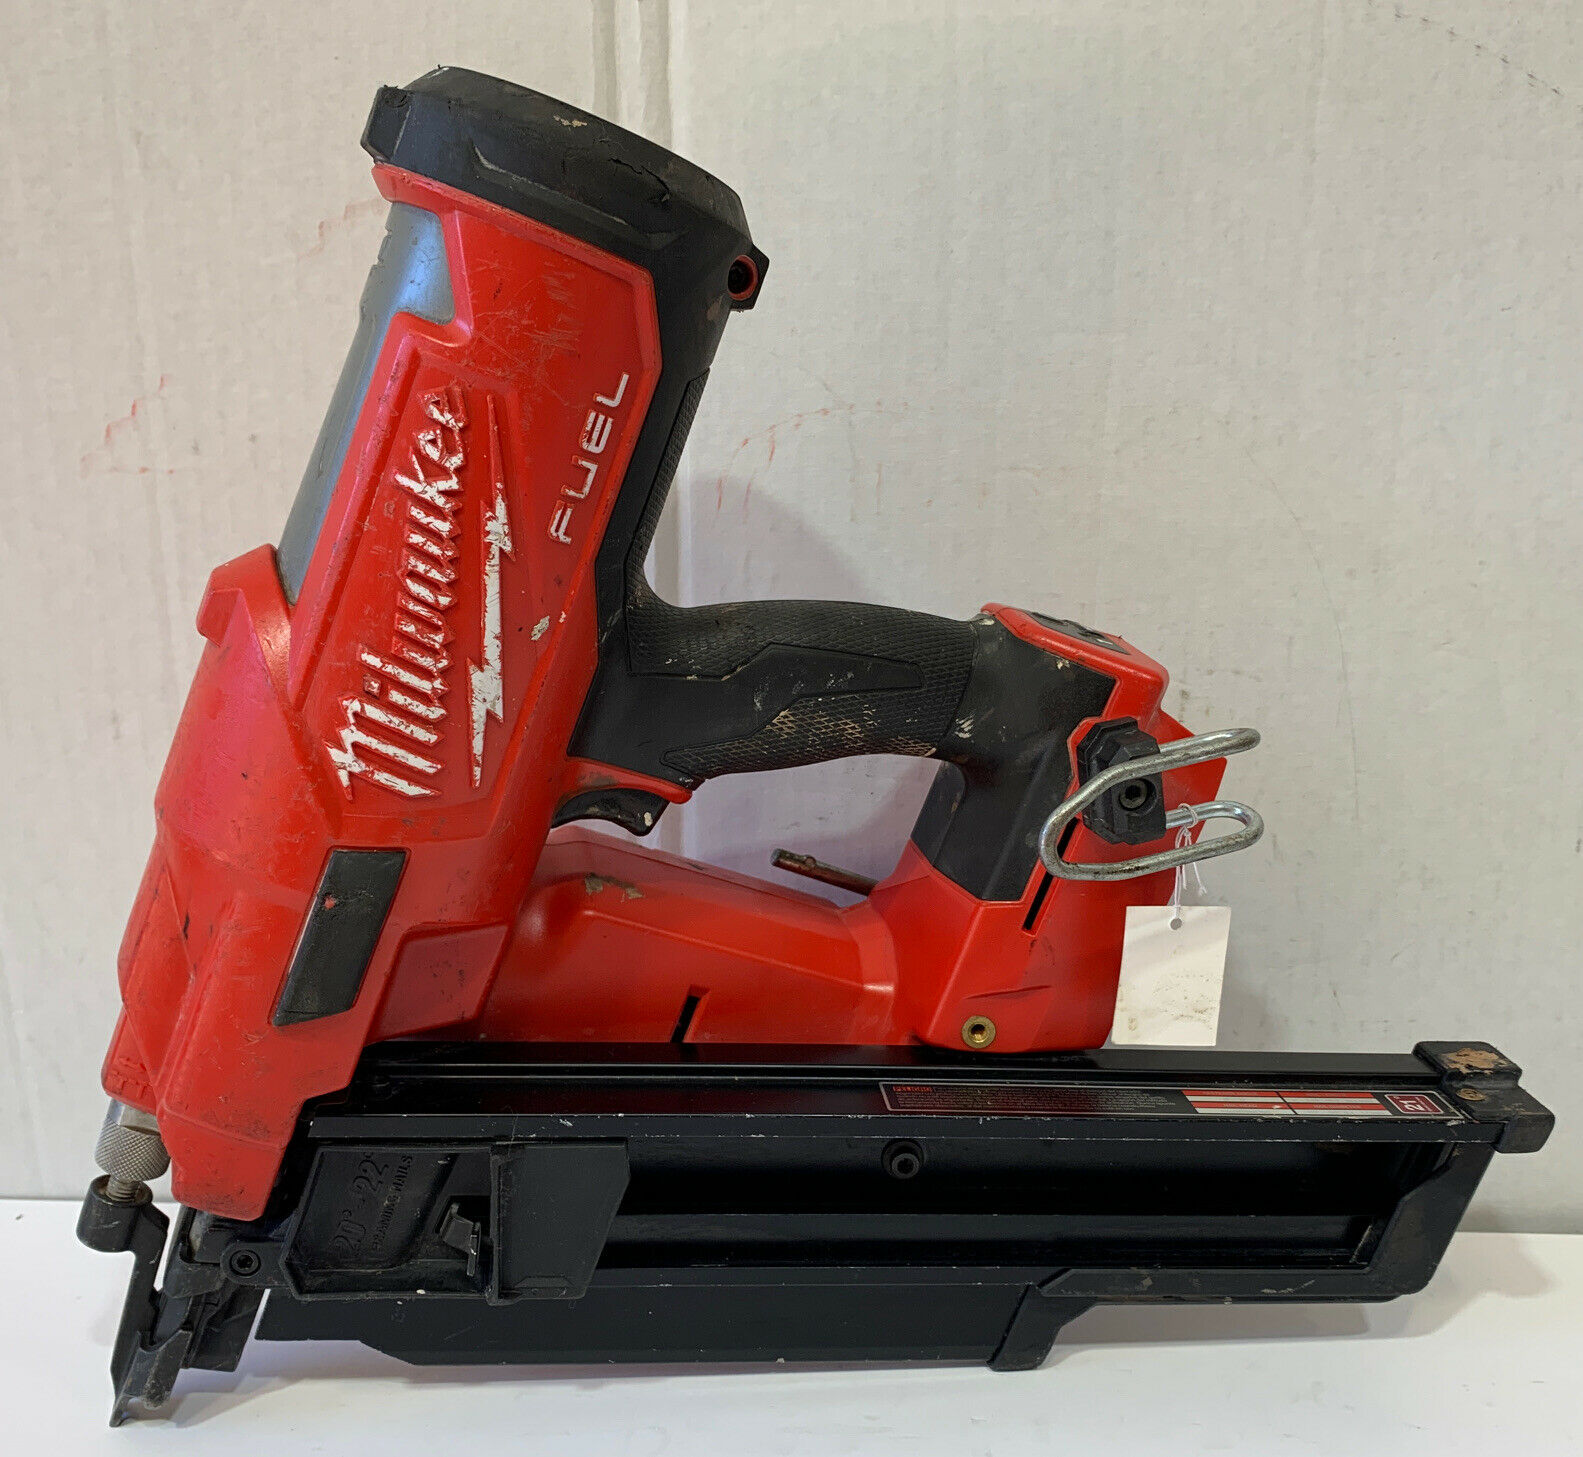 PREOWNED - Milwaukee 2744-20 M18 FUEL 21 Degree Cordless Framing Nailer. Available Now for 259.99